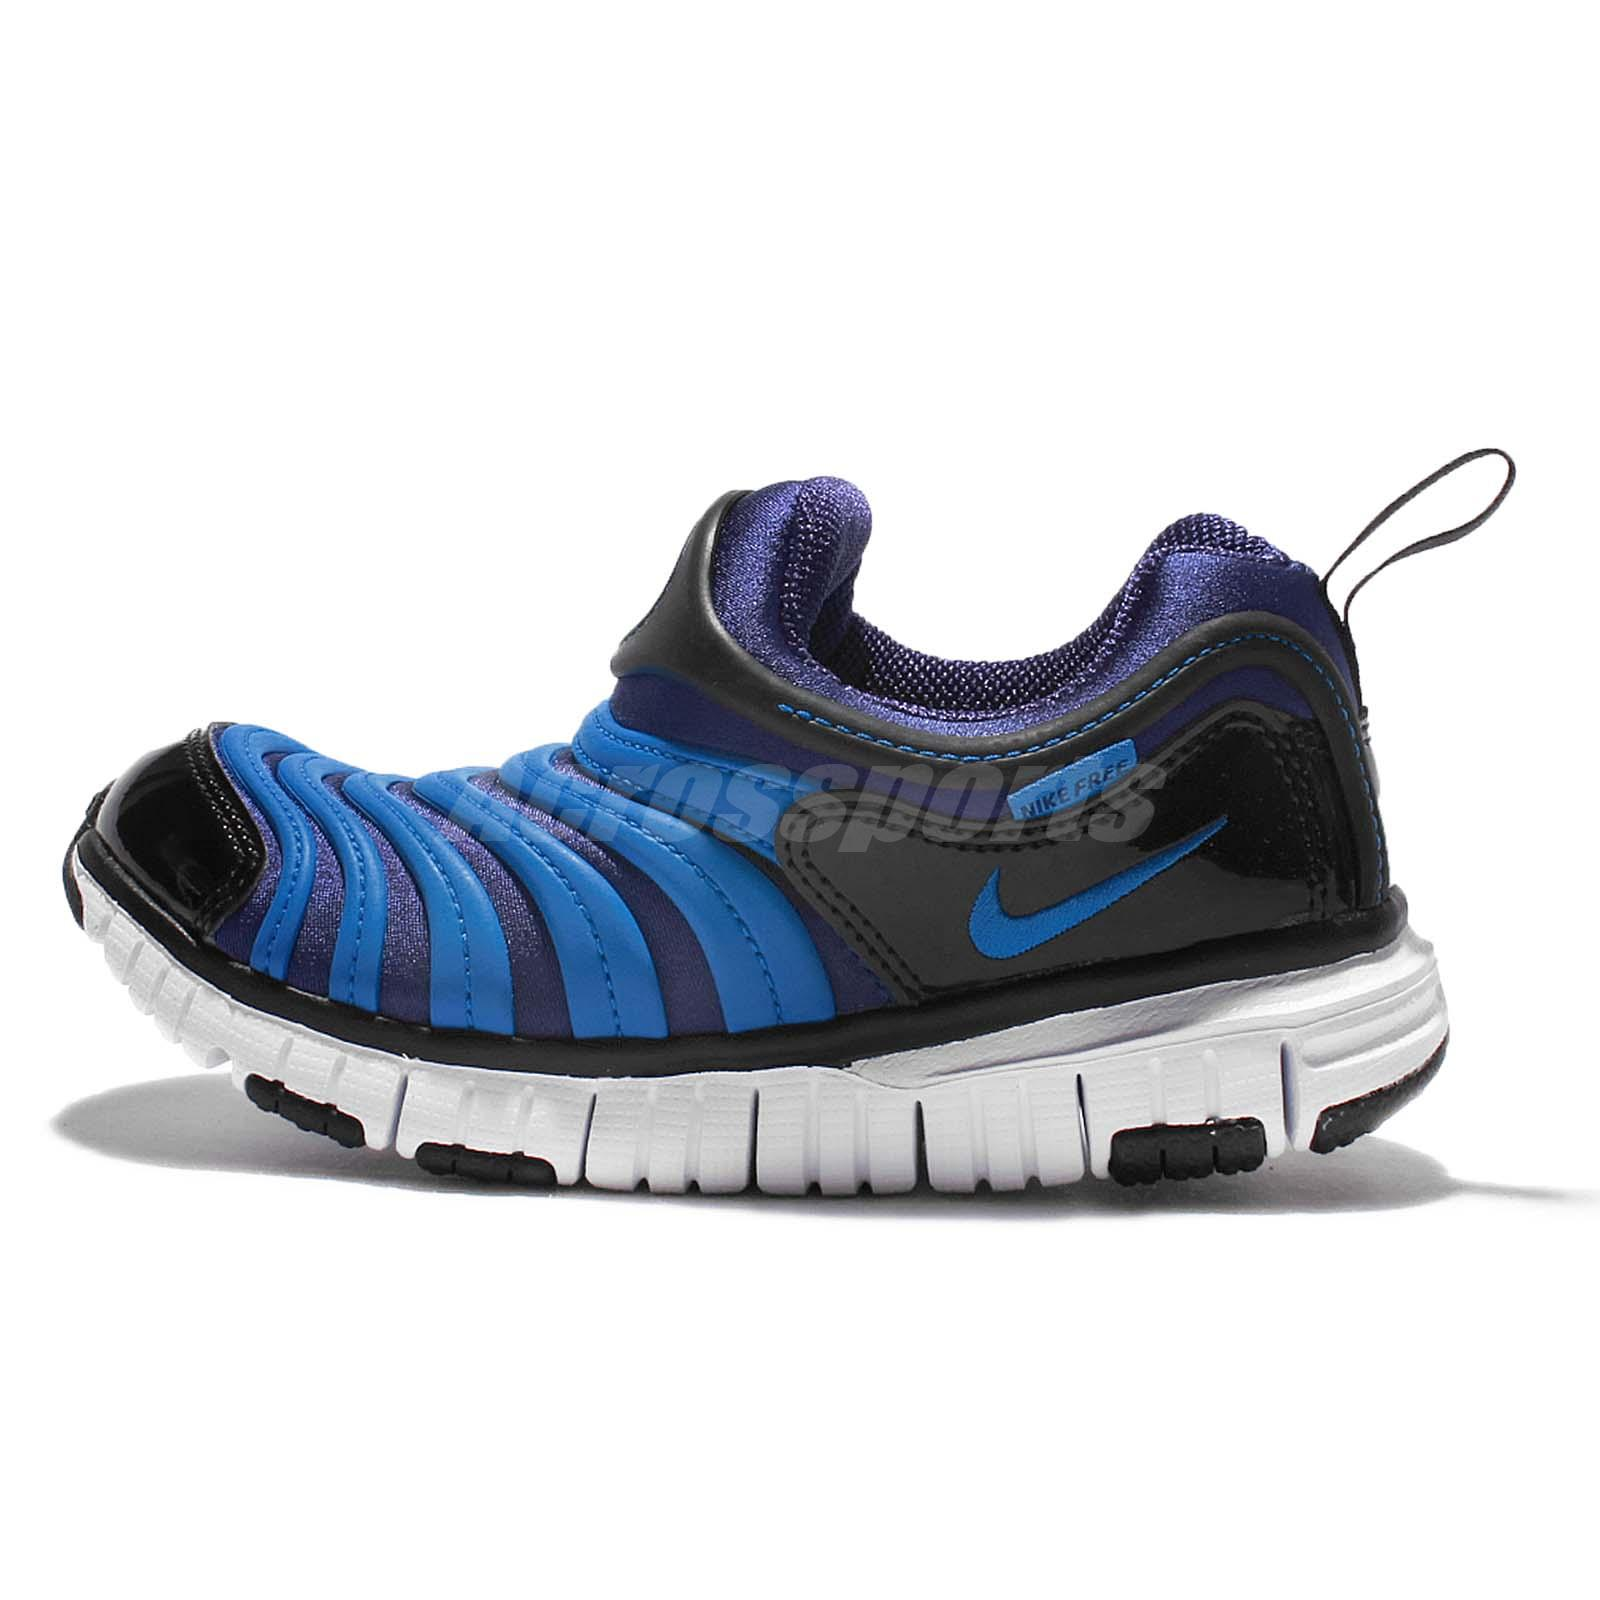 dad74295e07f49 Womens Nike Free Running Shoes On Sale Running Shoes Nike Free 5.0 ...